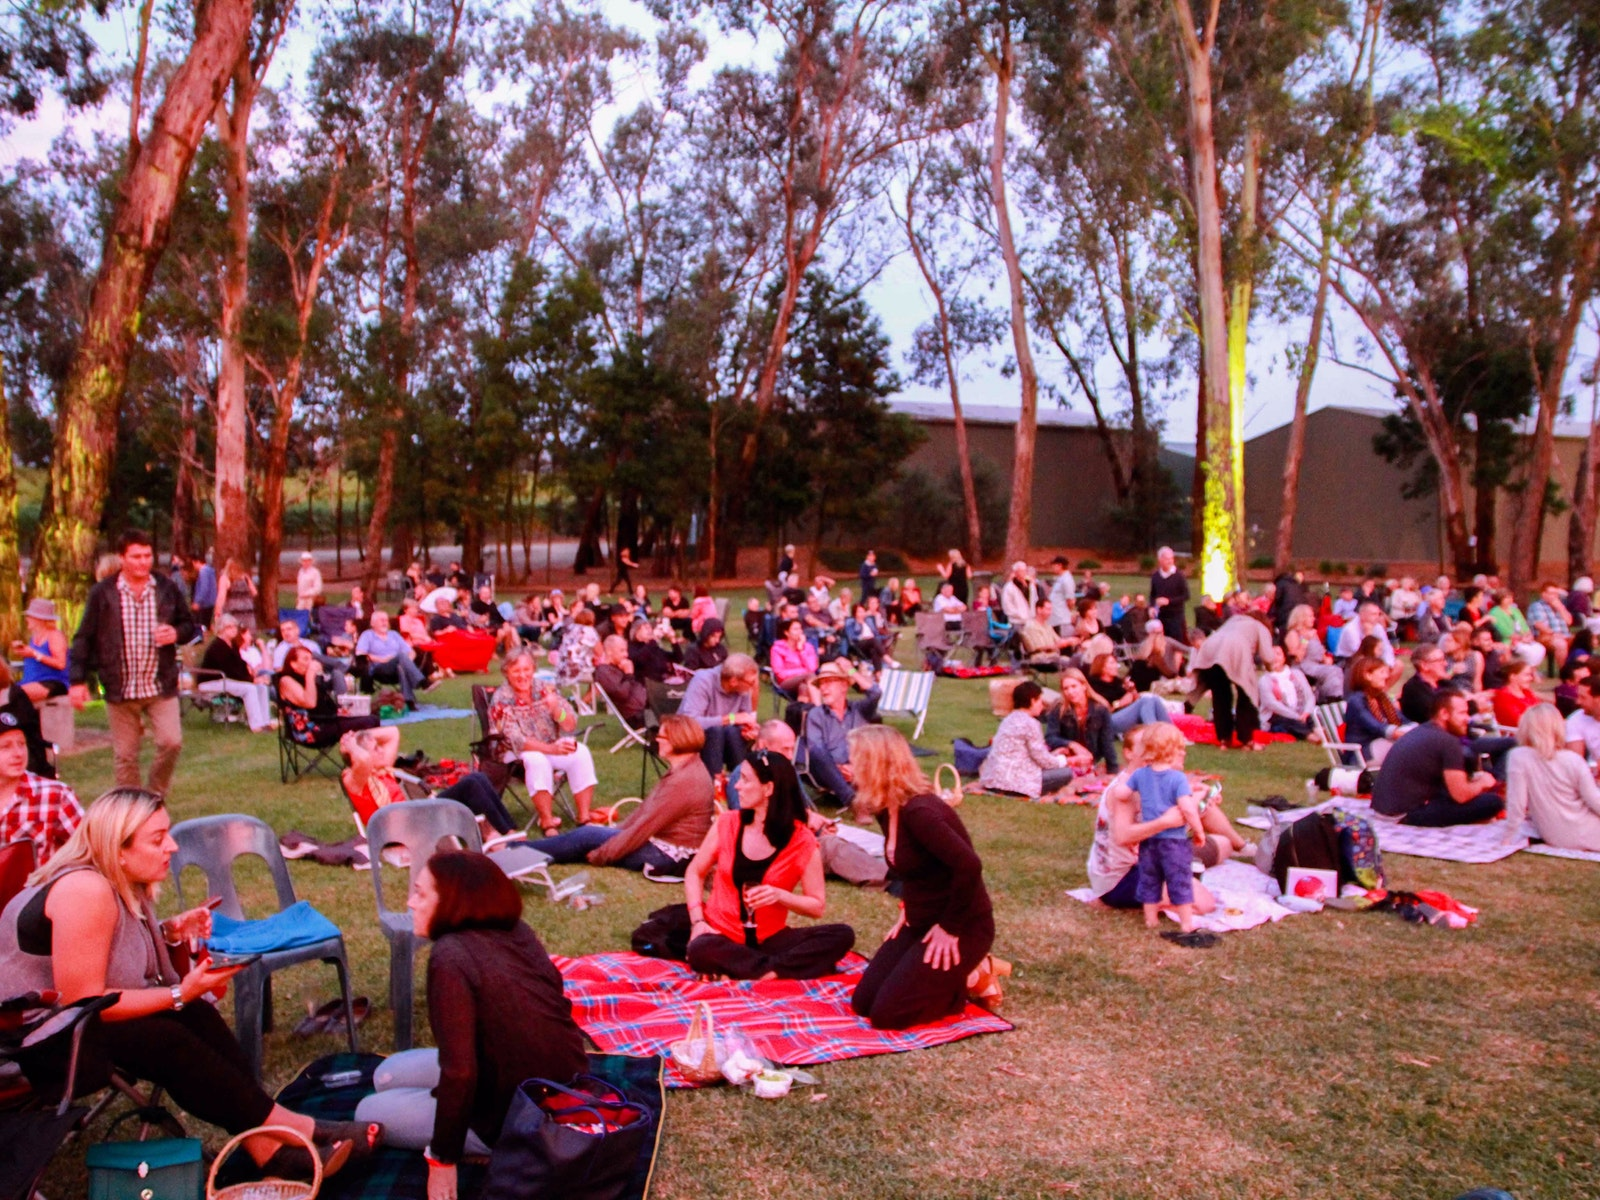 Picnic concert on the lawns at Helen's Hill